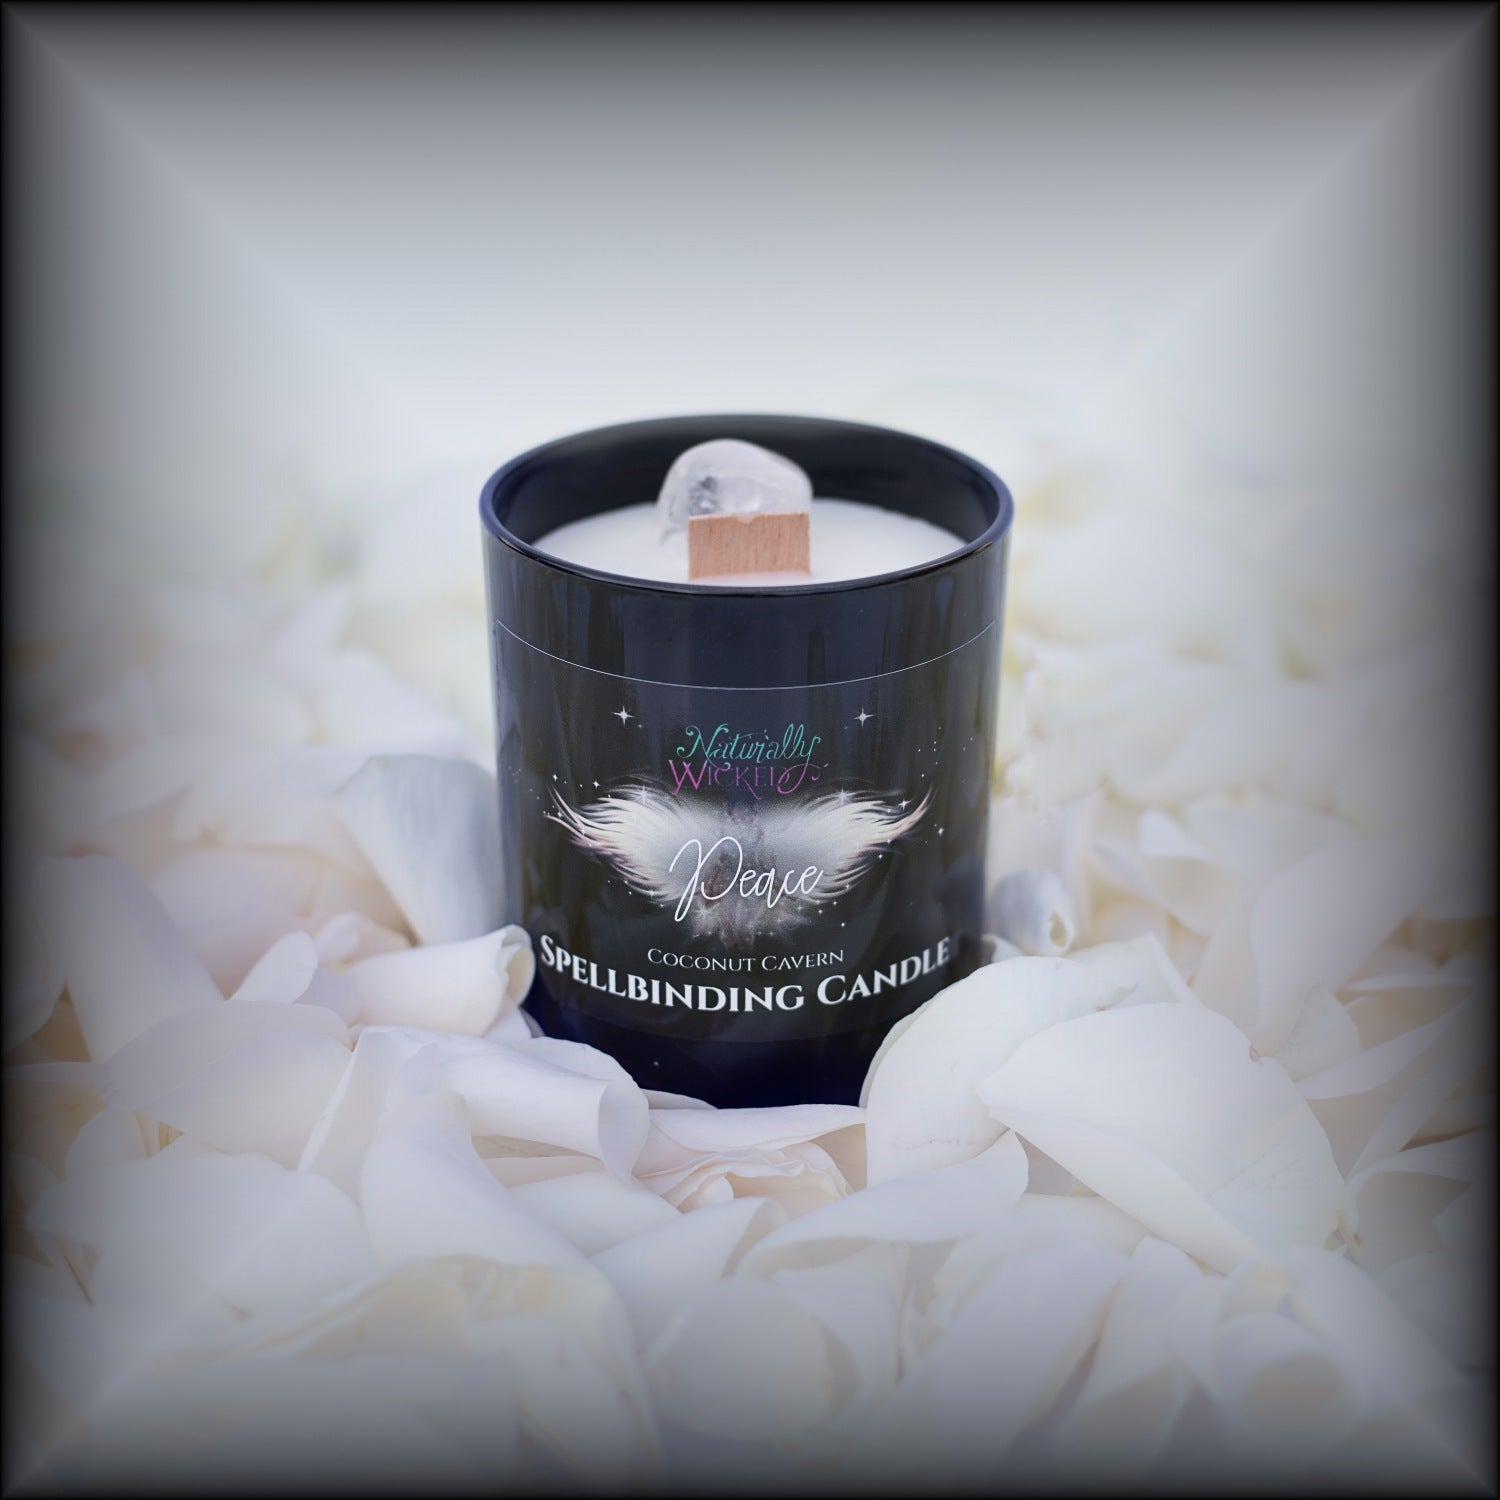 Naturally Wicked Spellbinding Peace Candle Entombed With Quartz Crystal Sits Amongst White Petals